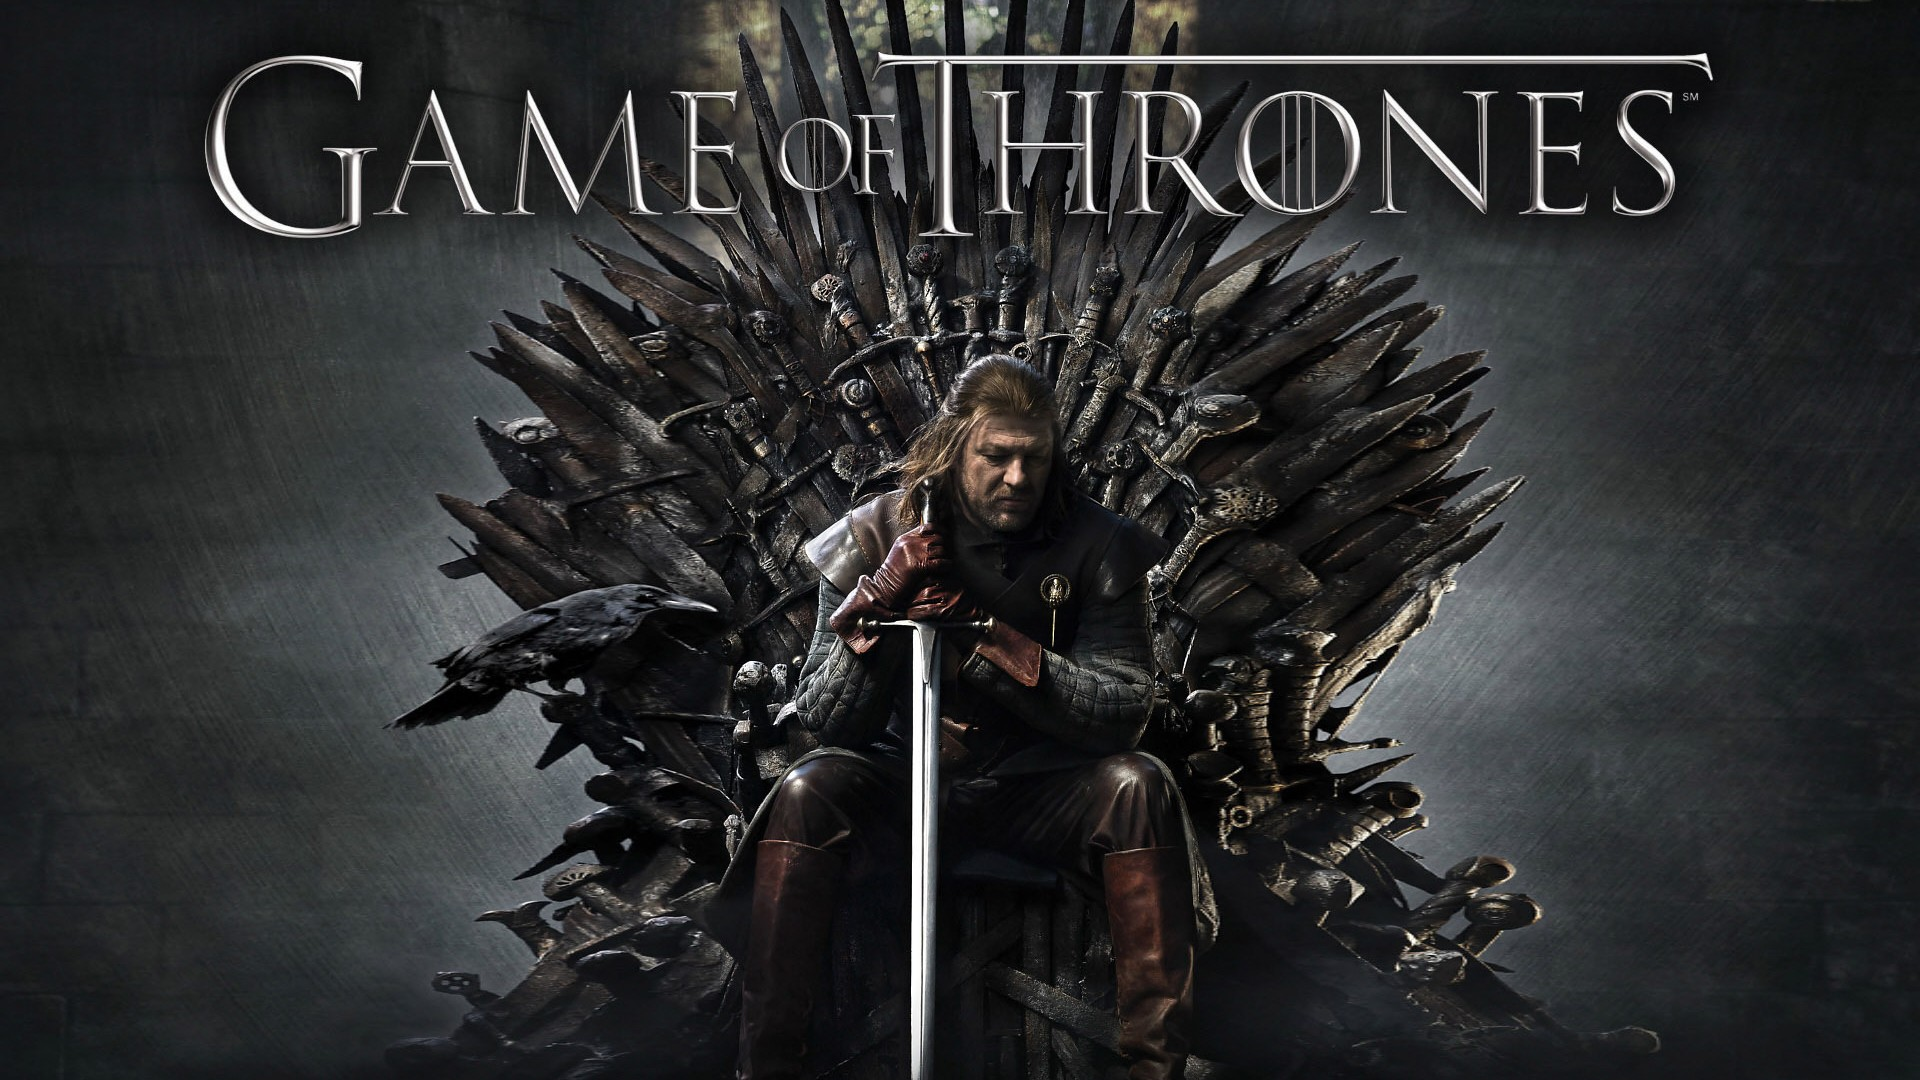 Download game of thrones season 1 hd background HD wallpaper 1920x1080